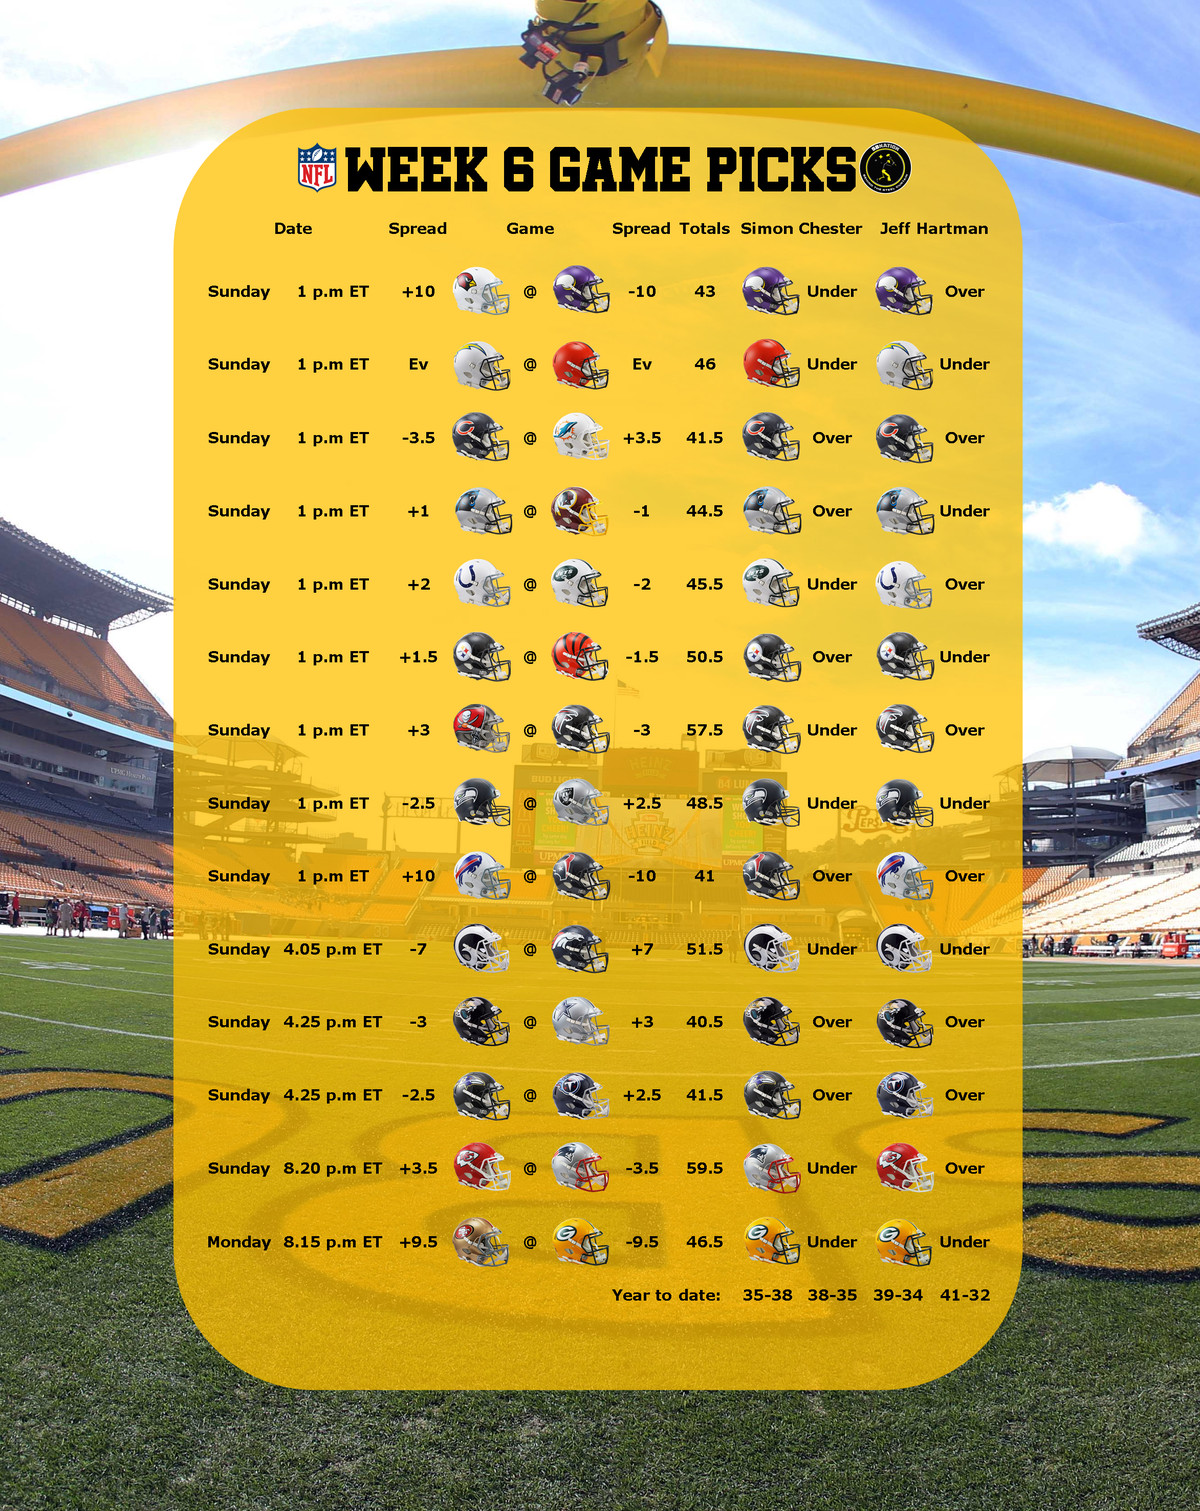 Nfl Odds And Predictions Picking The Full Week 6 Slate Of Games Behind The Steel Curtain